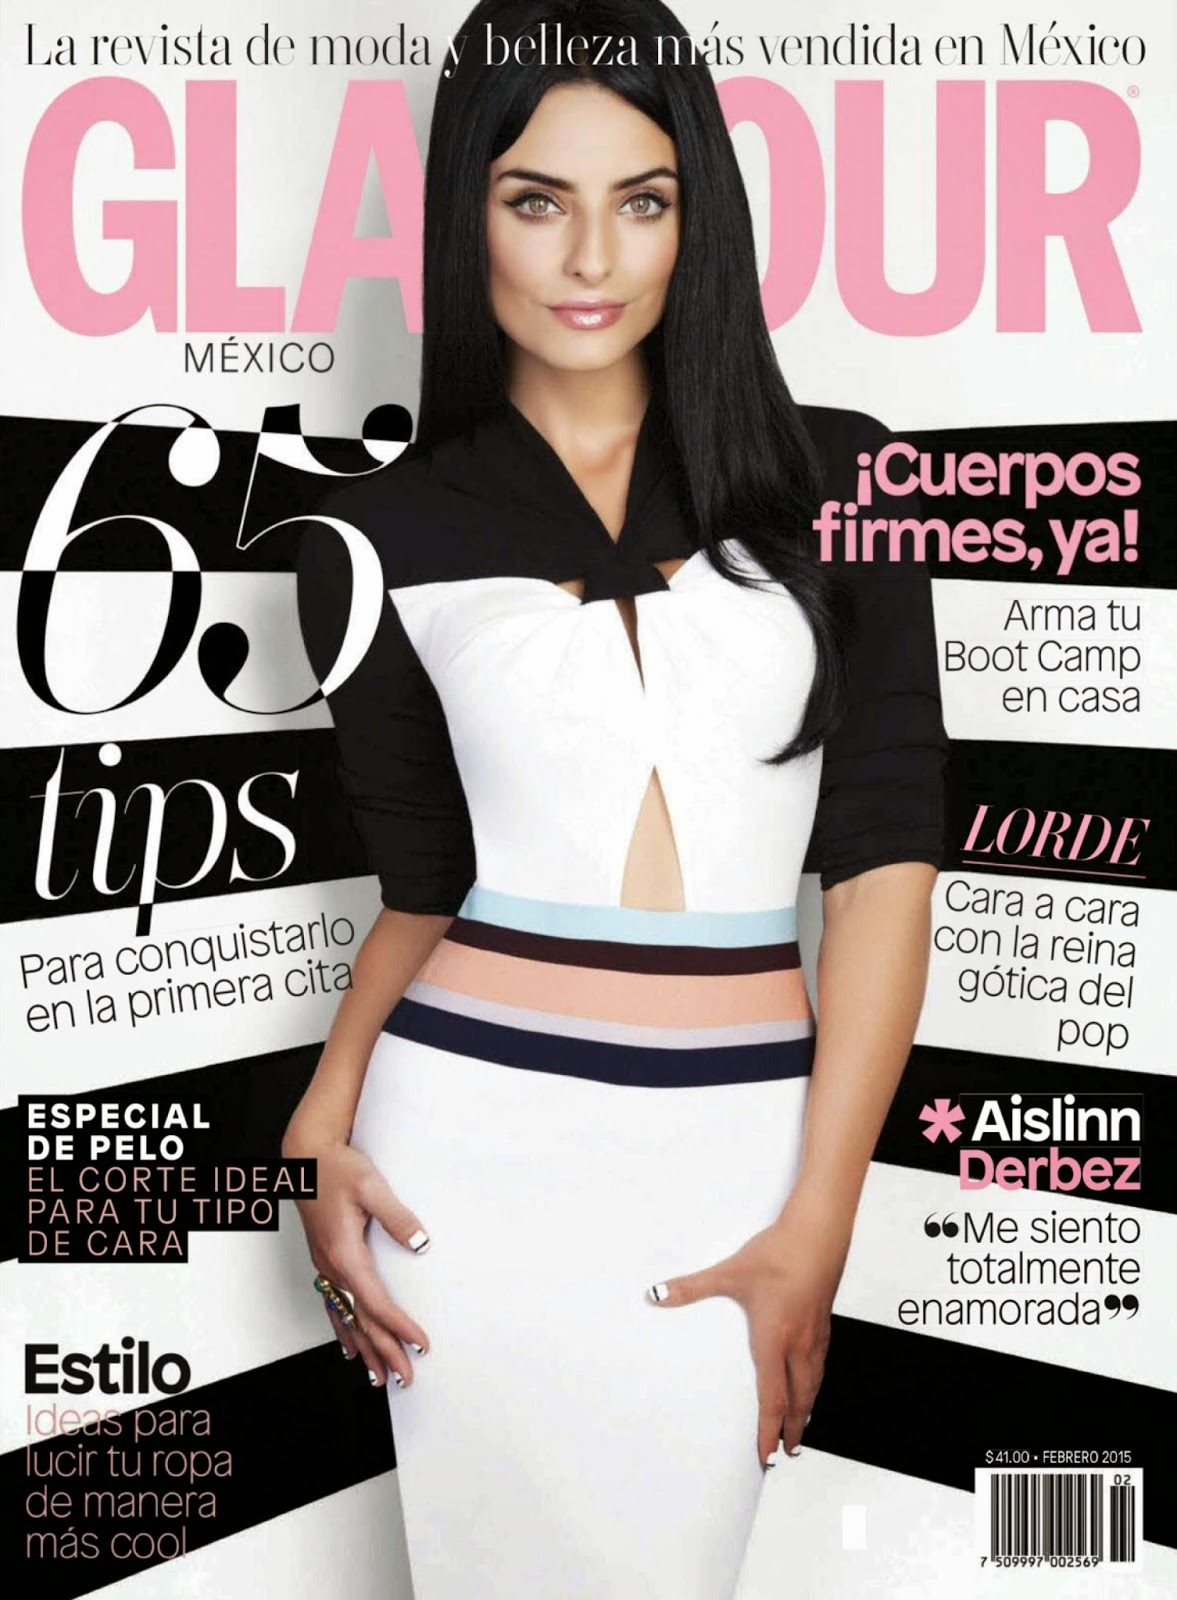 Aislinn Derbez for Glamour, Mexico